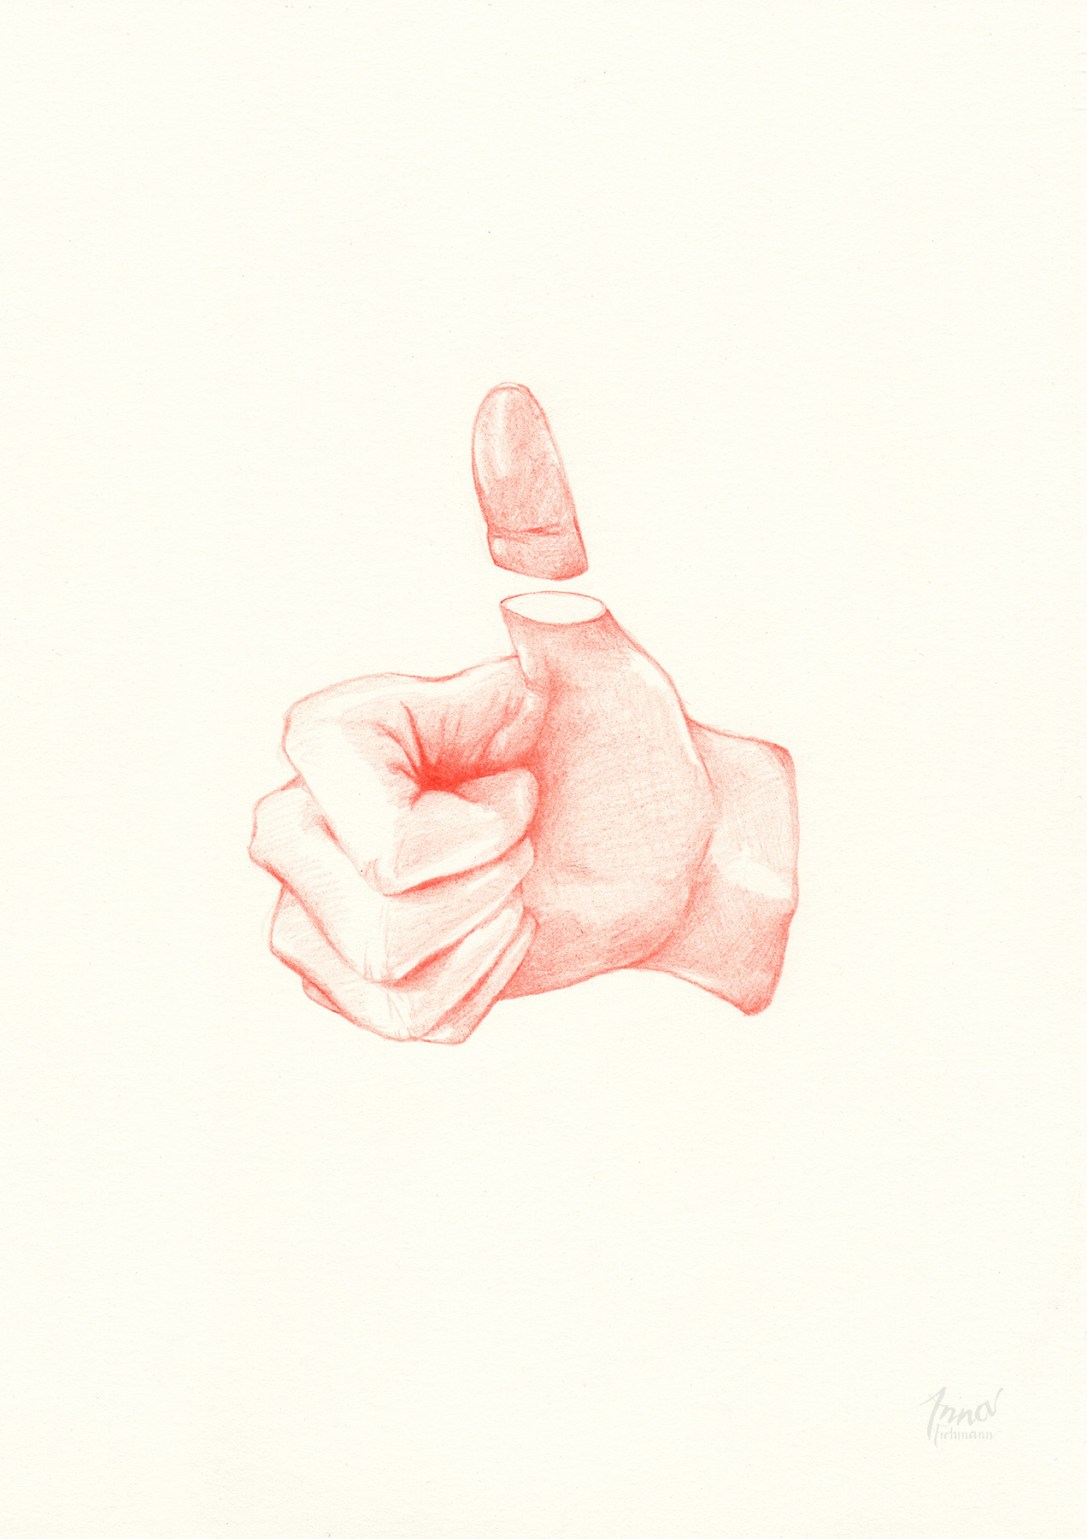 THUMBS UP   pencil on paper